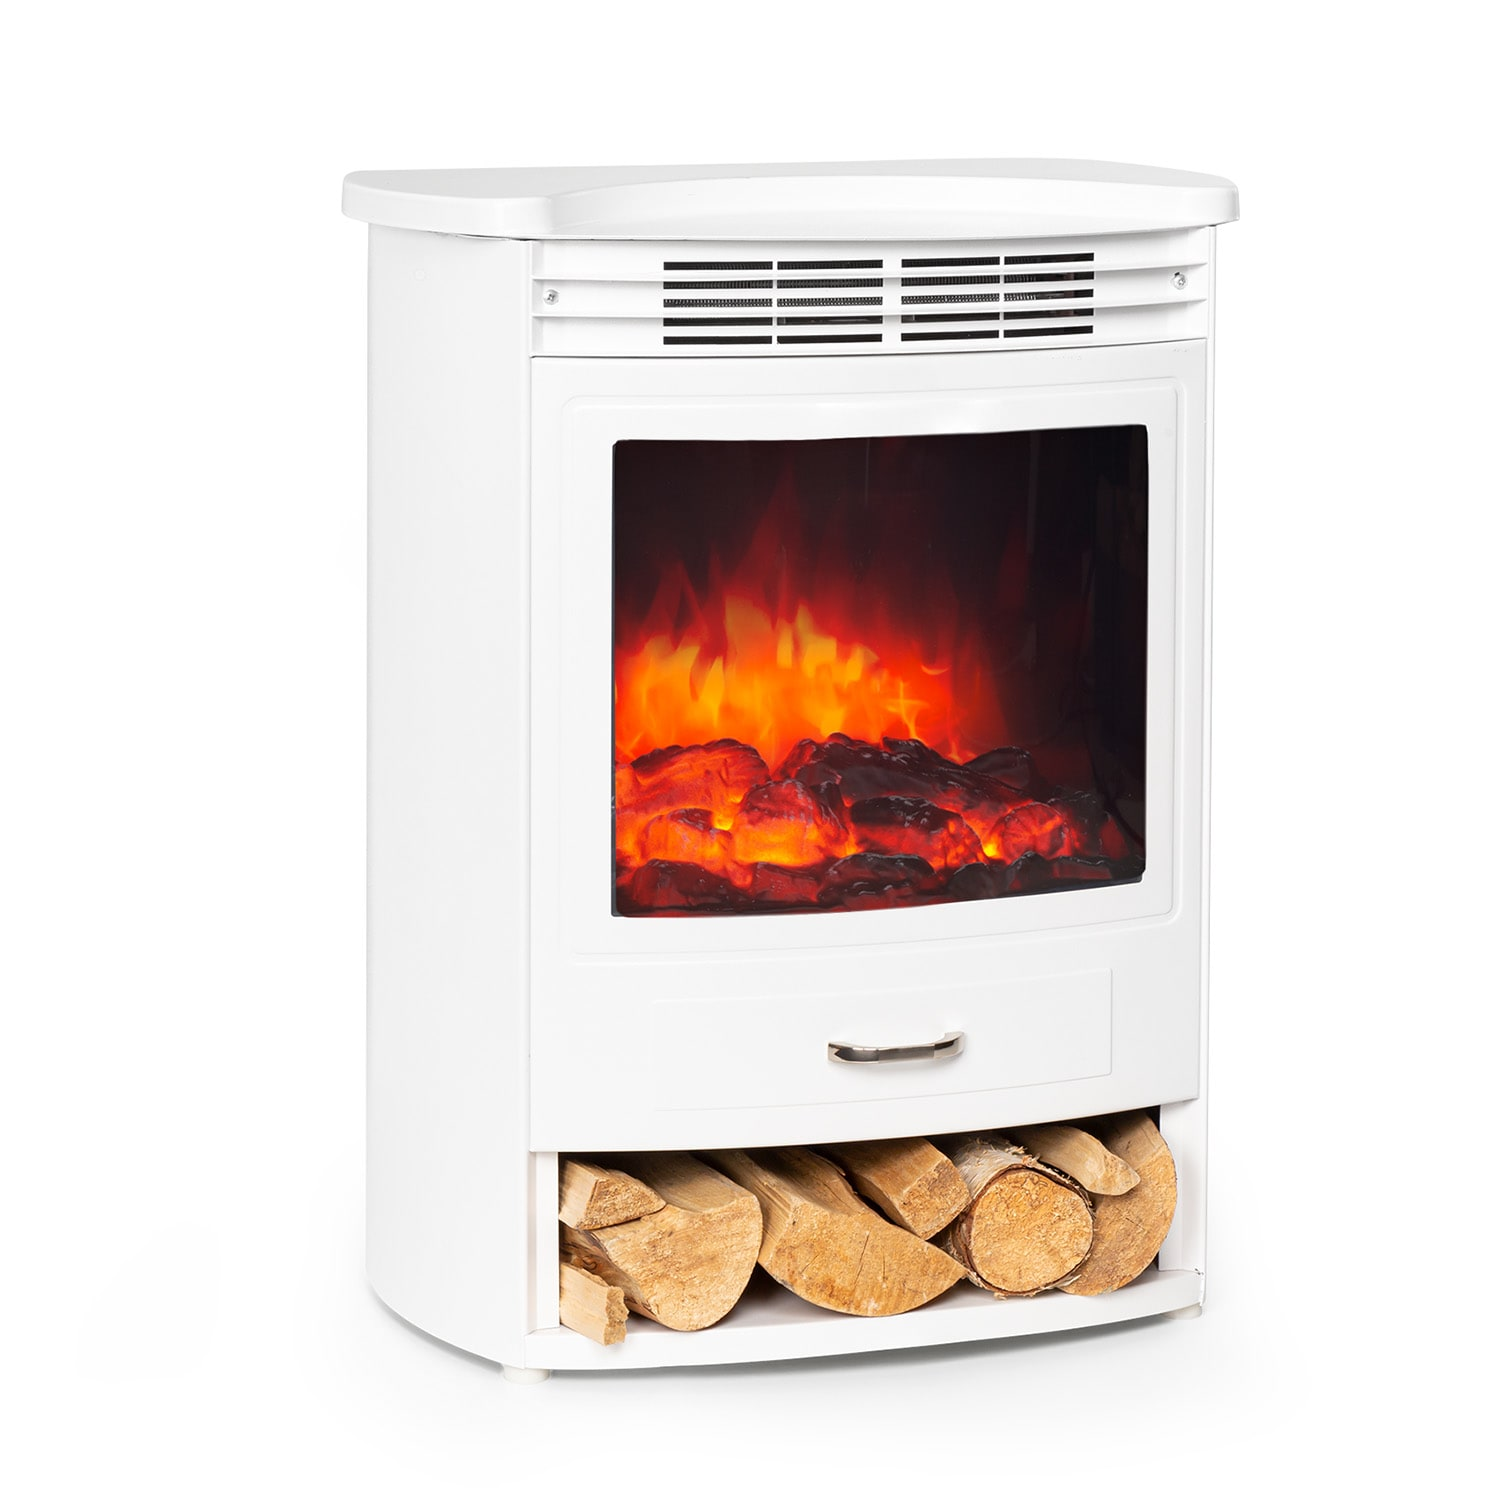 Bormio S WH, Electric Fireplace, 950 / 1900W, Thermostat, Weekly Timer, White